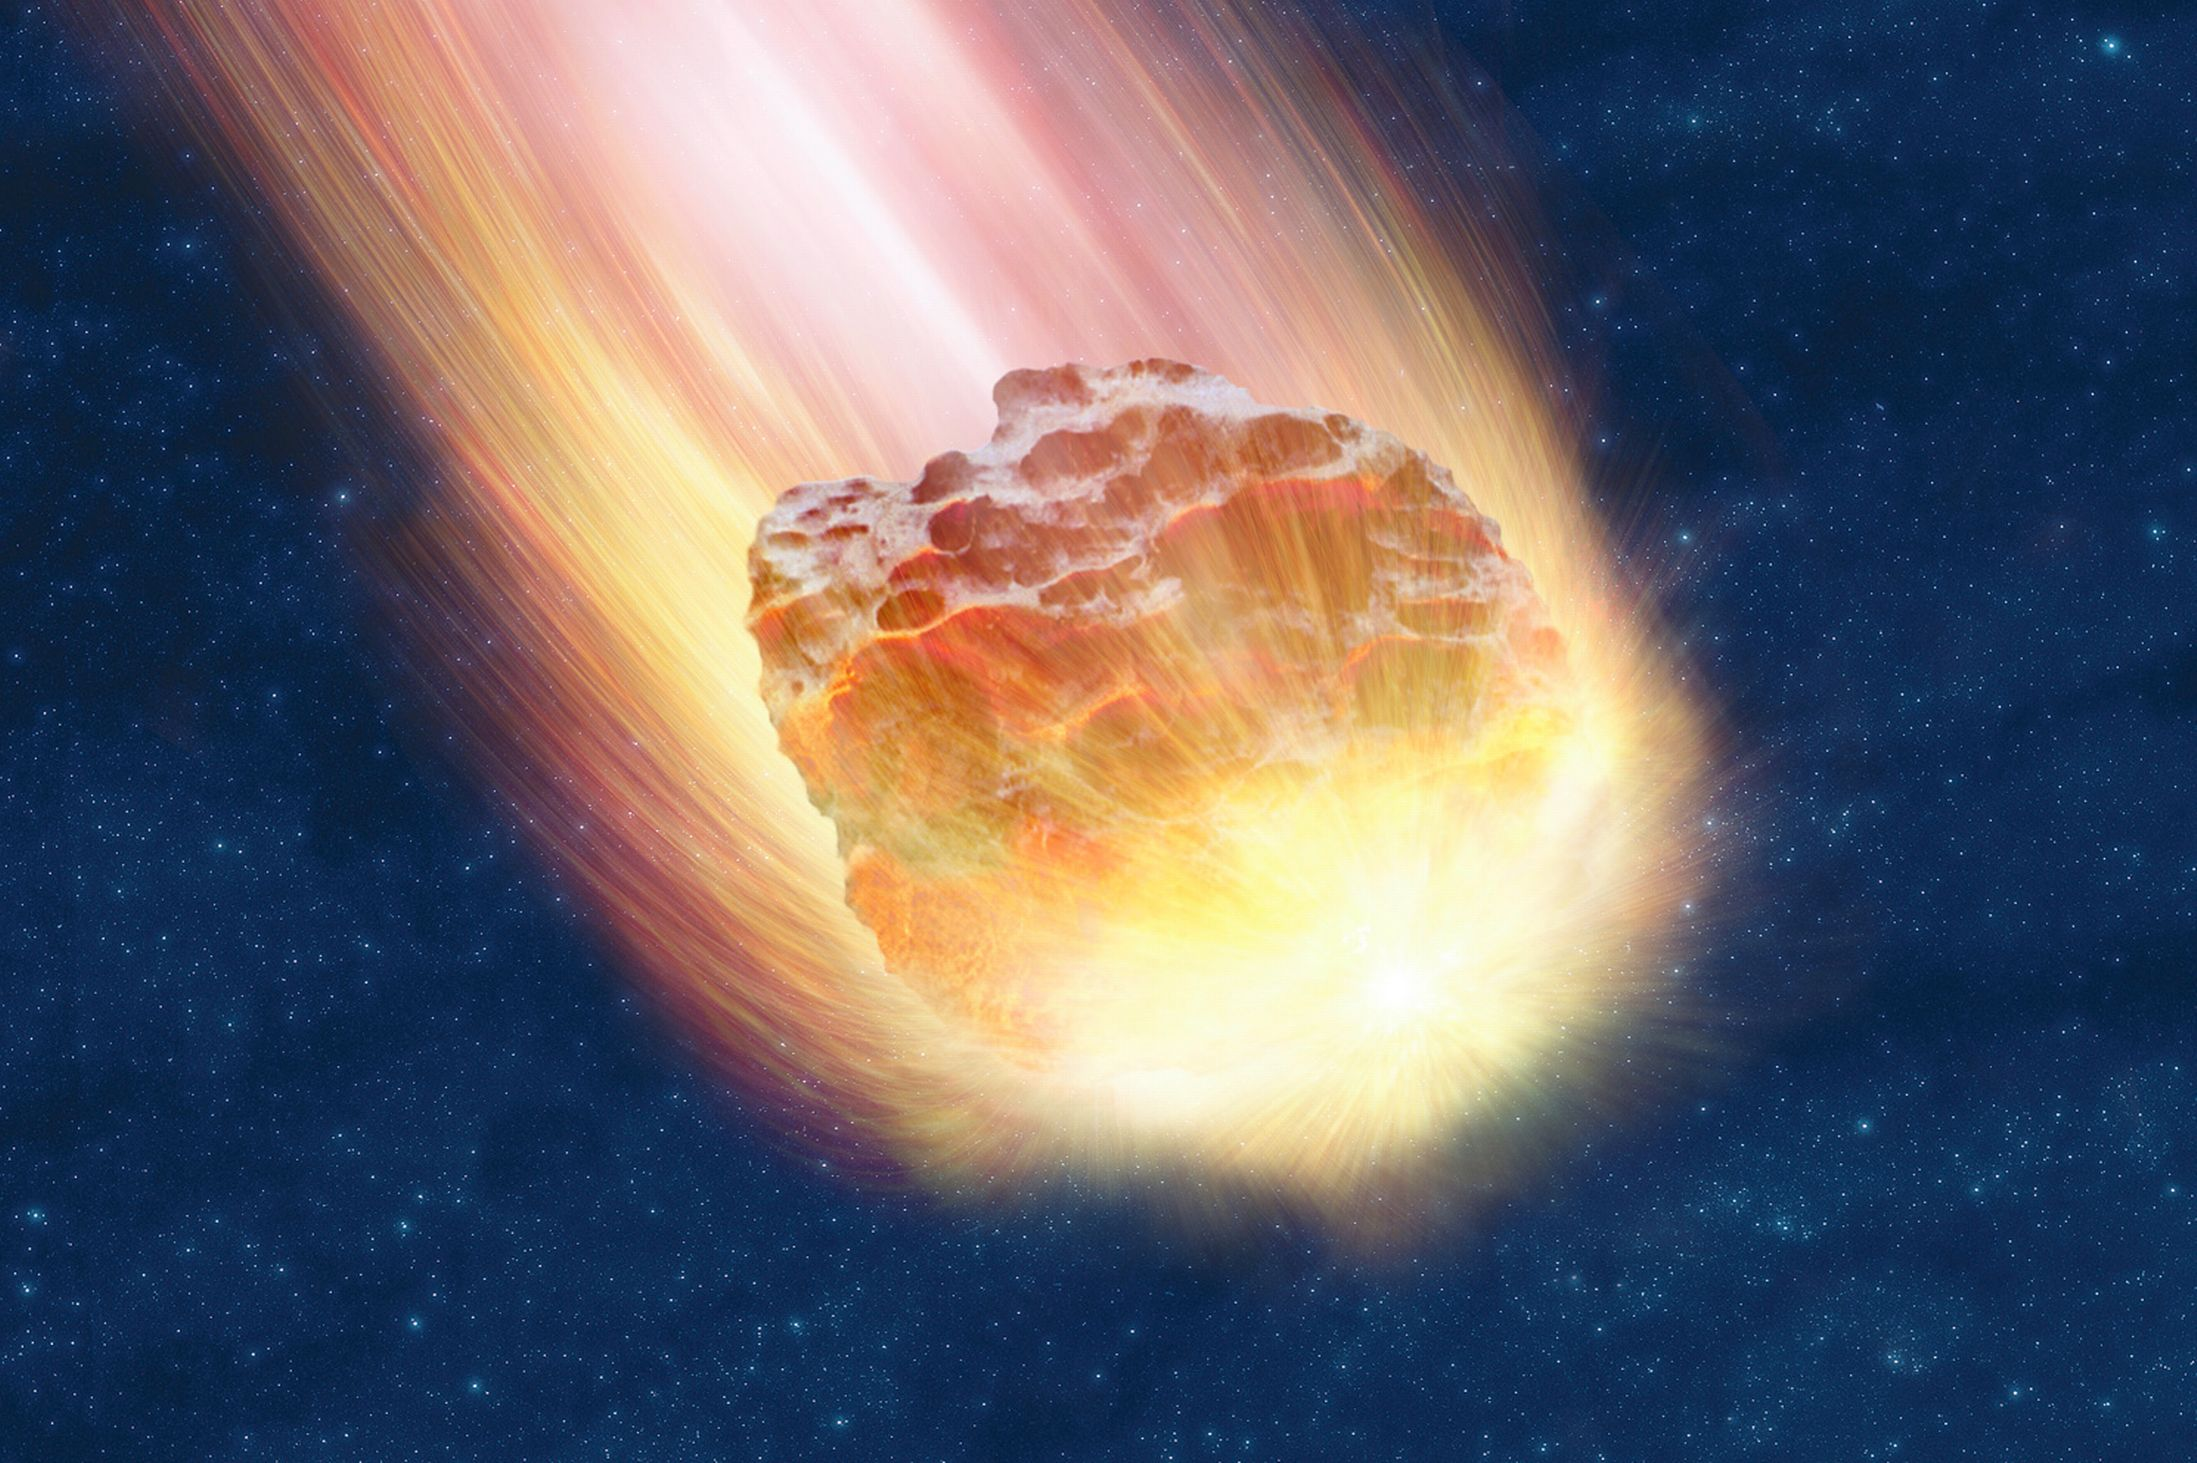 an analysis of the potential damage of meteorites in the surface of the earth Collisions between asteroids in space create smaller asteroidal fragments and these fragments are the sources of most meteorites that have struck the earth's surface because they are readily available for study, many meteorites have already been subjected to detailed chemical and physical analyses in laboratories.